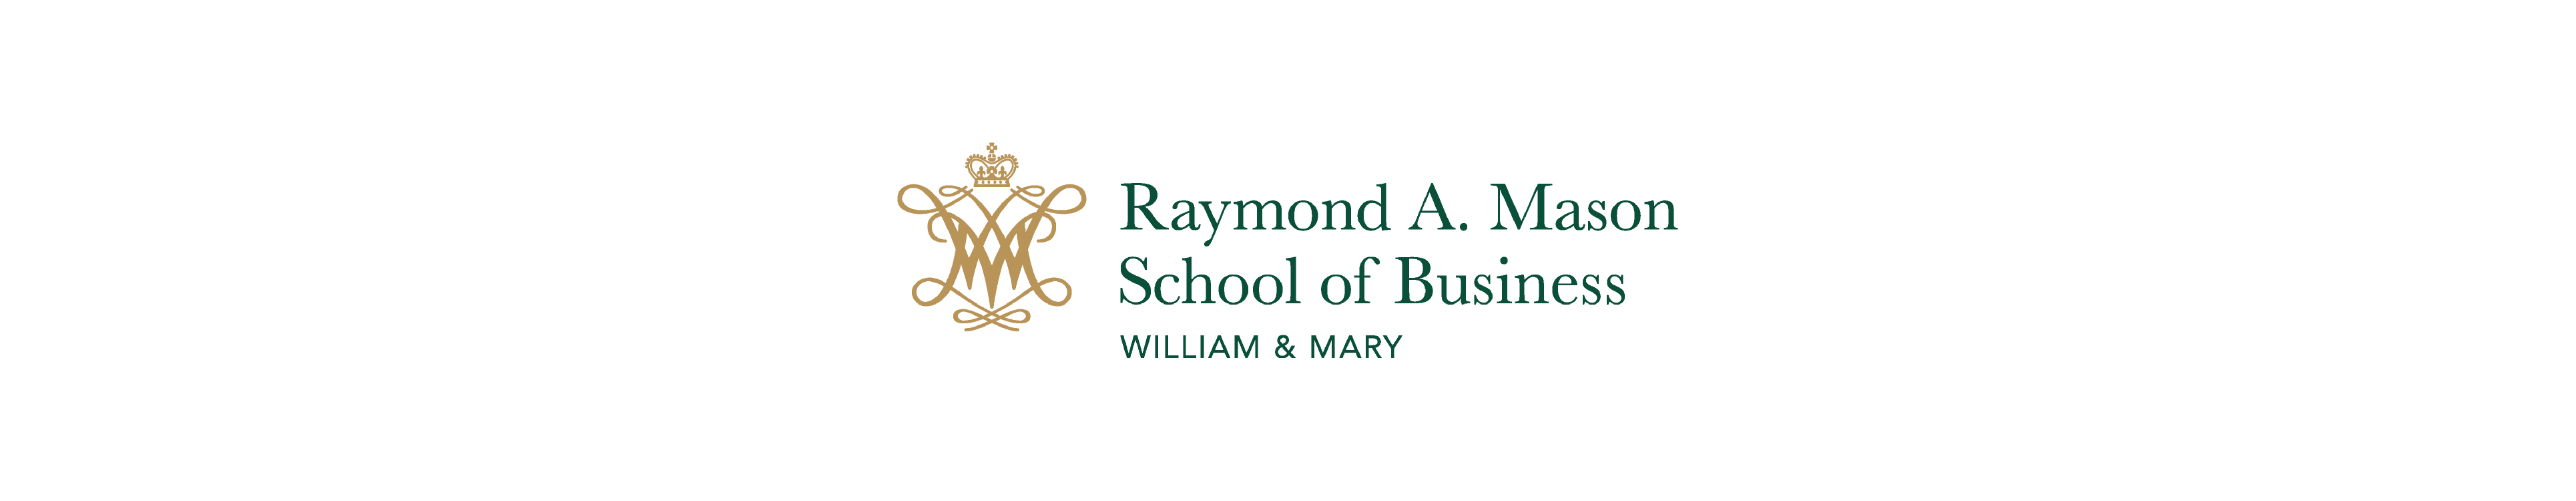 Raymond A. Mason School of Business Annual Homecoming Celebration